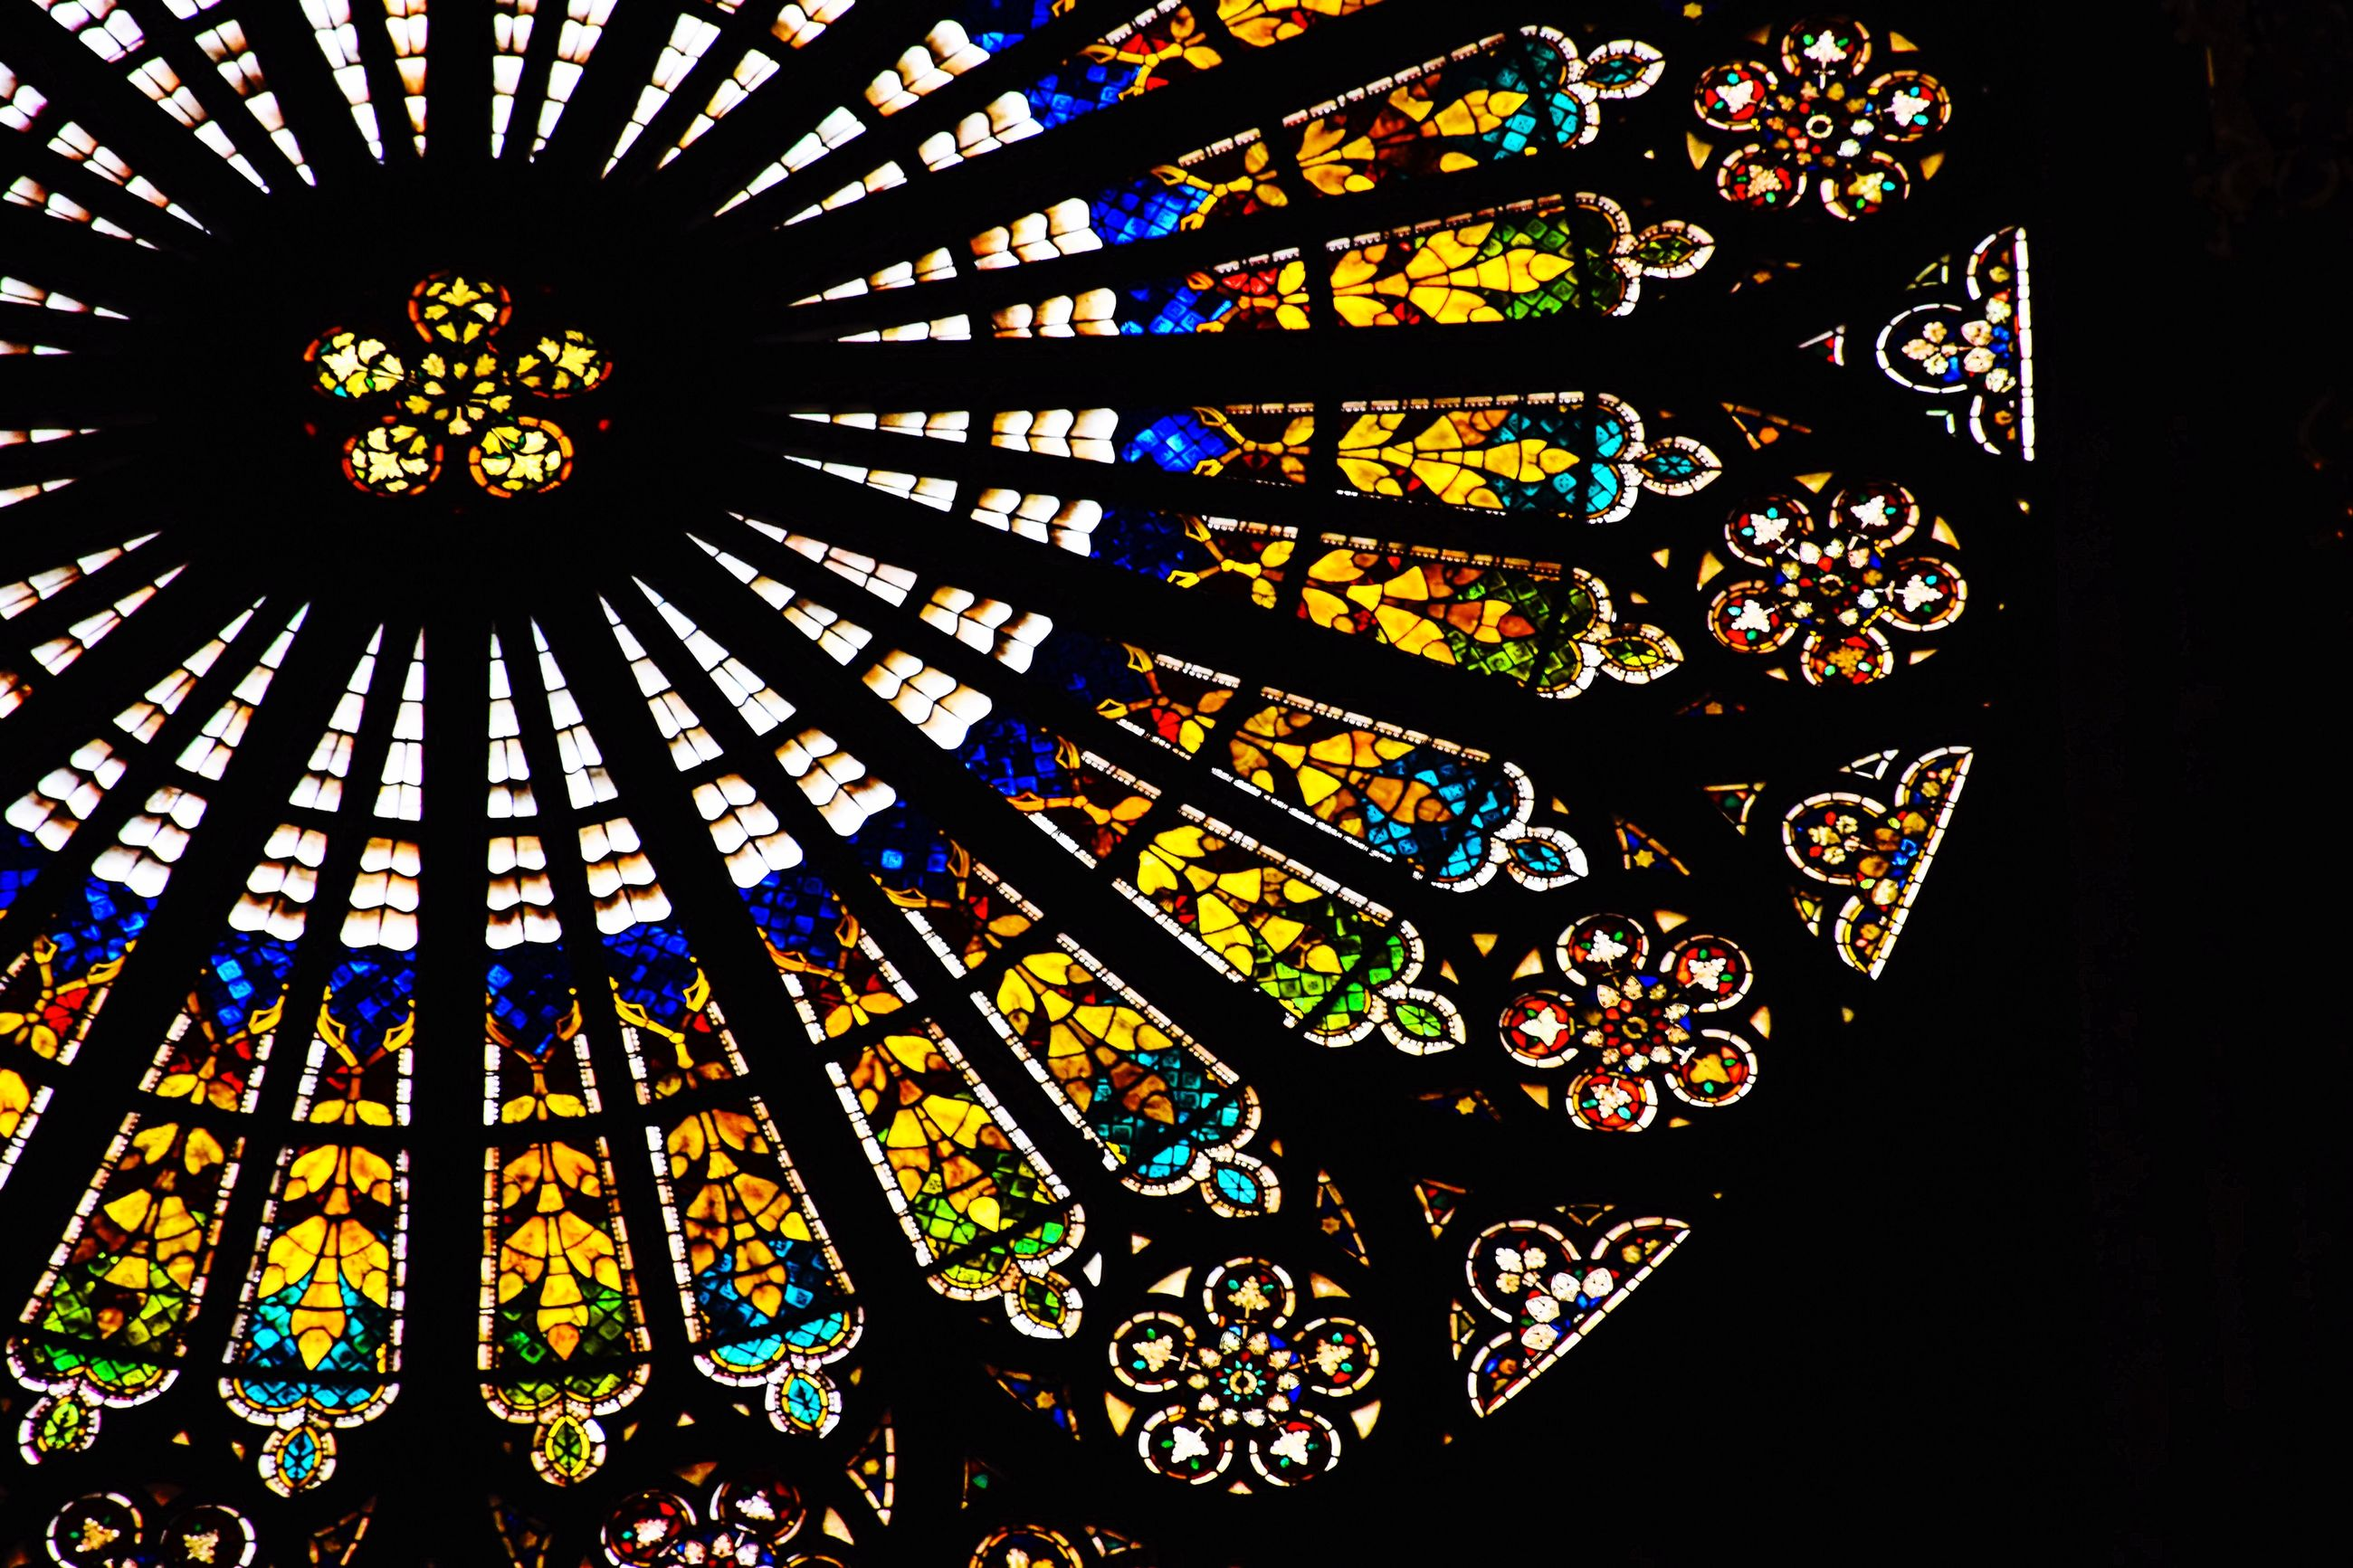 stained glass, glass, indoors, multi colored, design, pattern, architecture, shape, no people, geometric shape, built structure, place of worship, window, low angle view, religion, art and craft, circle, belief, ornate, spirituality, ceiling, floral pattern, directly below, architecture and art